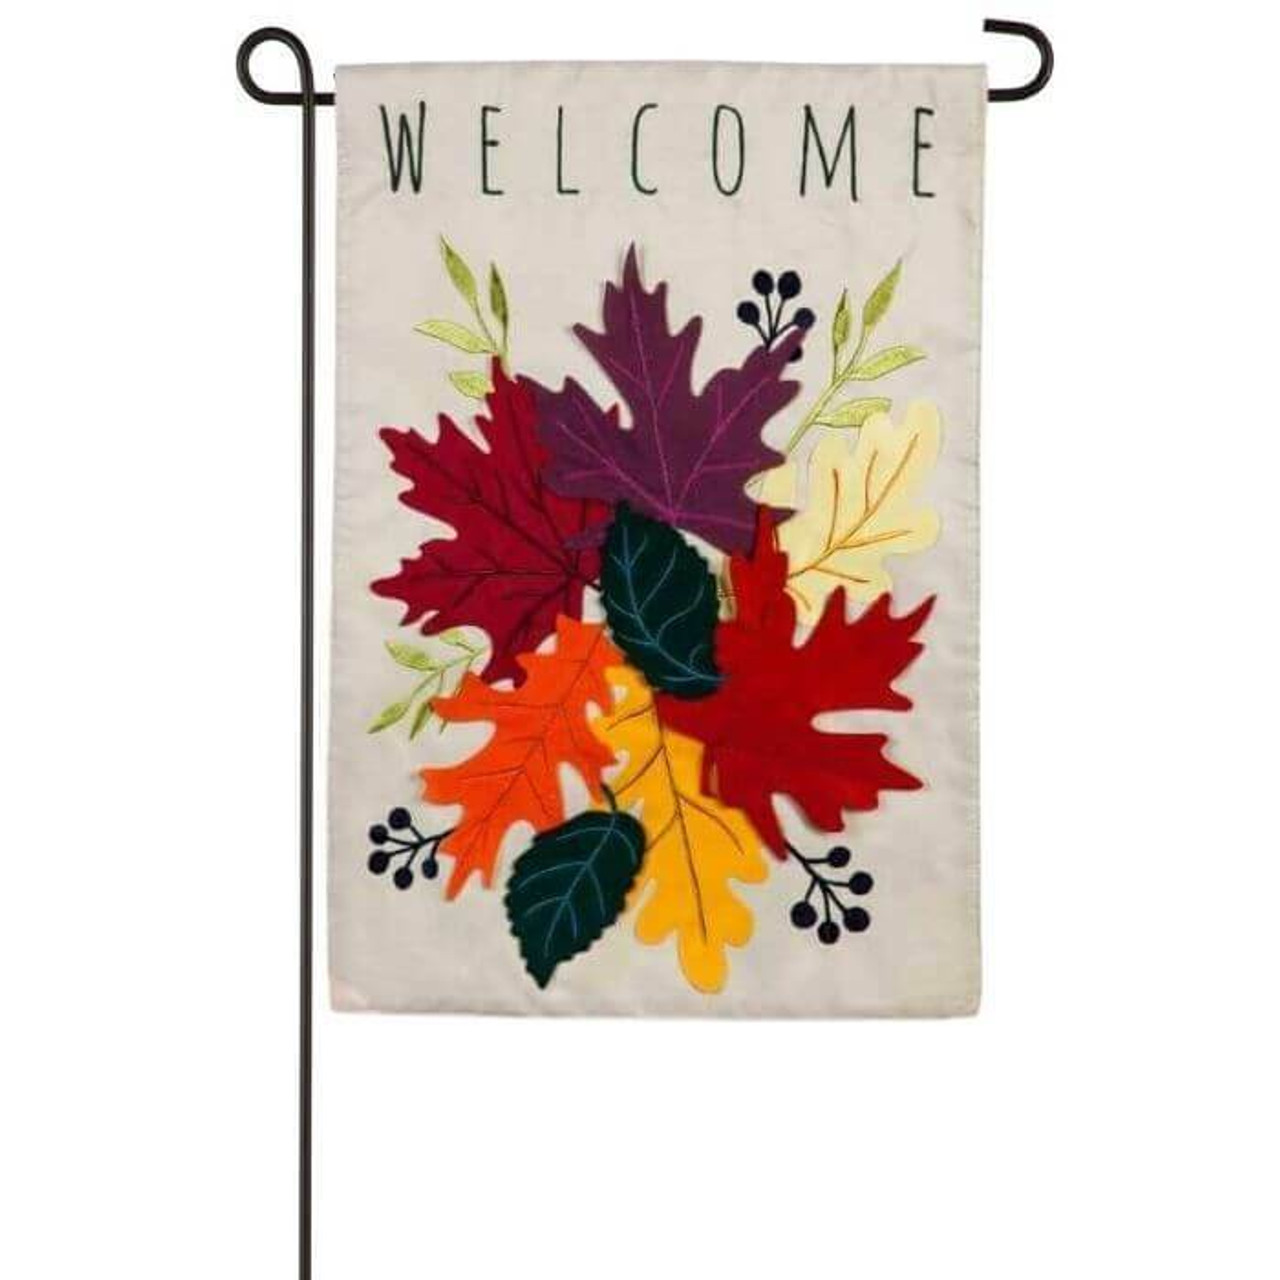 """This double-sided appliqué garden size flag features a light gray background, embroidered,  layered Autumn colored leaves (red, purple, cream, yellow, orange plus green), and reads: """"Welcome"""". This garden size flag is designed with nylon fabric with tight, detailed machine stitching."""